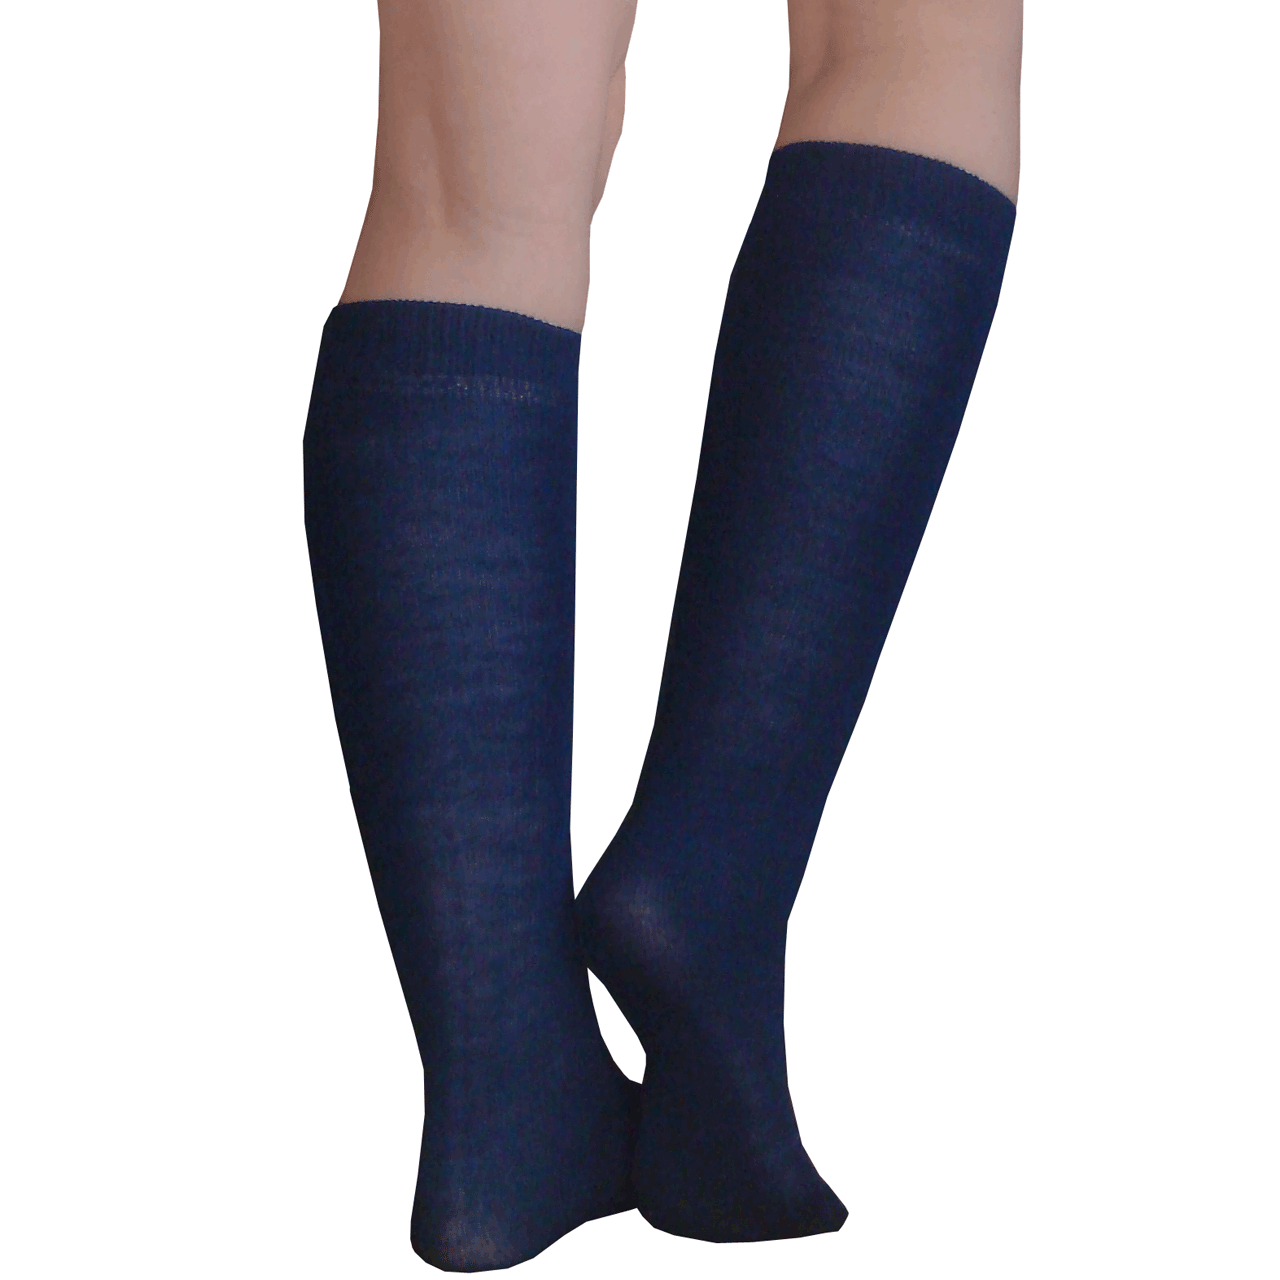 Free shipping BOTH ways on navy blue knee high socks, from our vast selection of styles. Fast delivery, and 24/7/ real-person service with a smile. Click or call